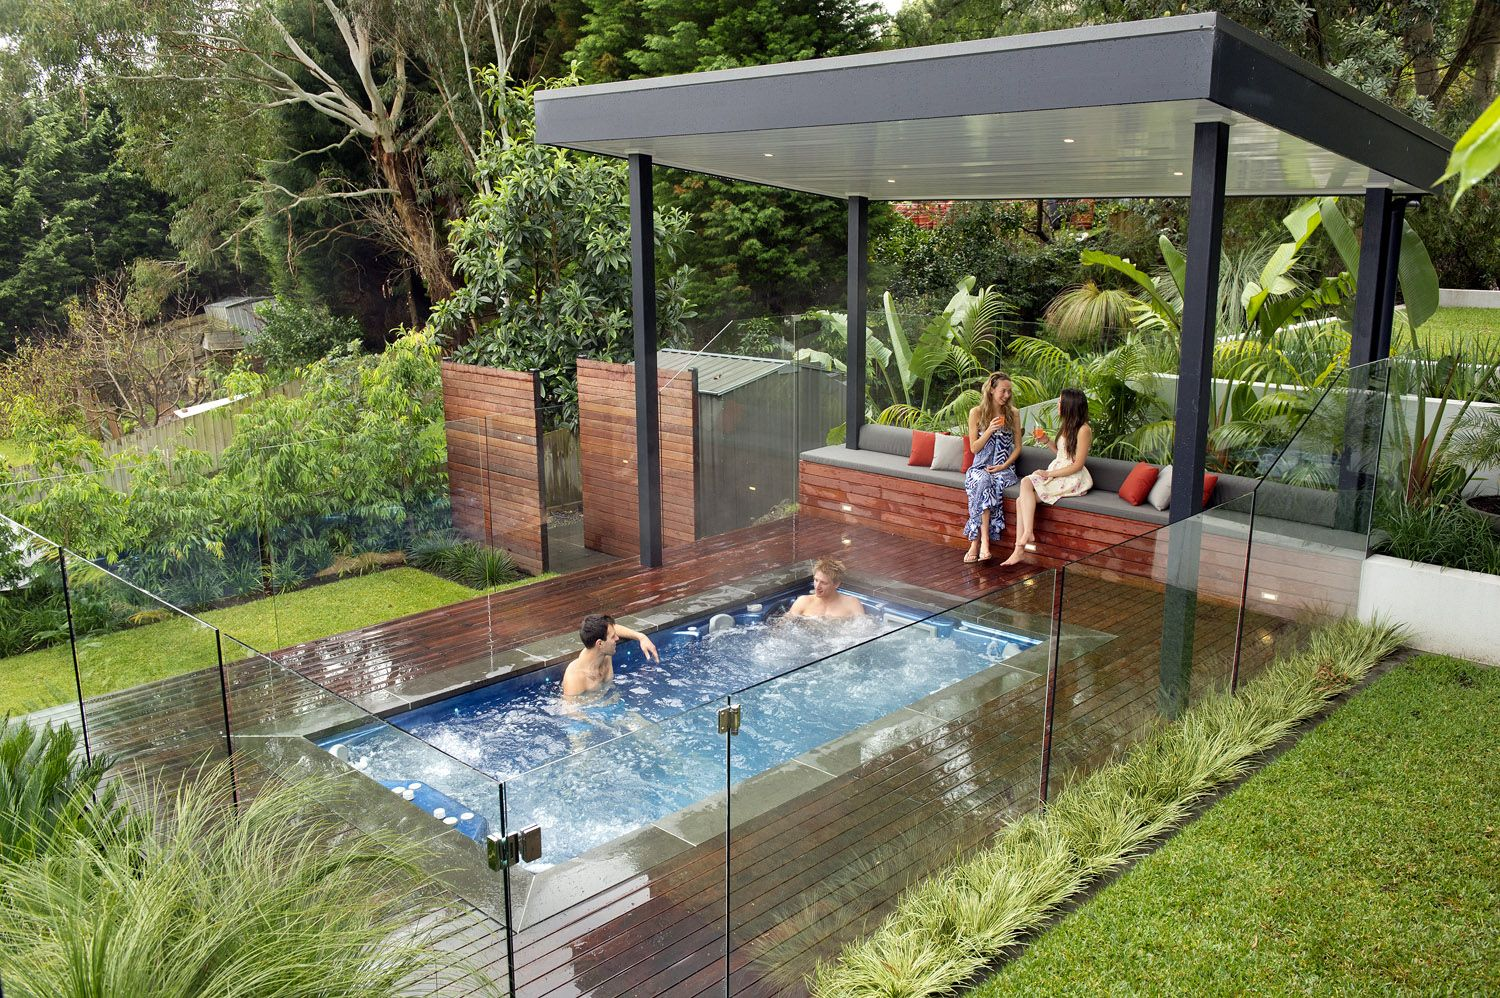 Modern nice design of the outdoor spa landscaping ideas for Pool garden mountain resort argao